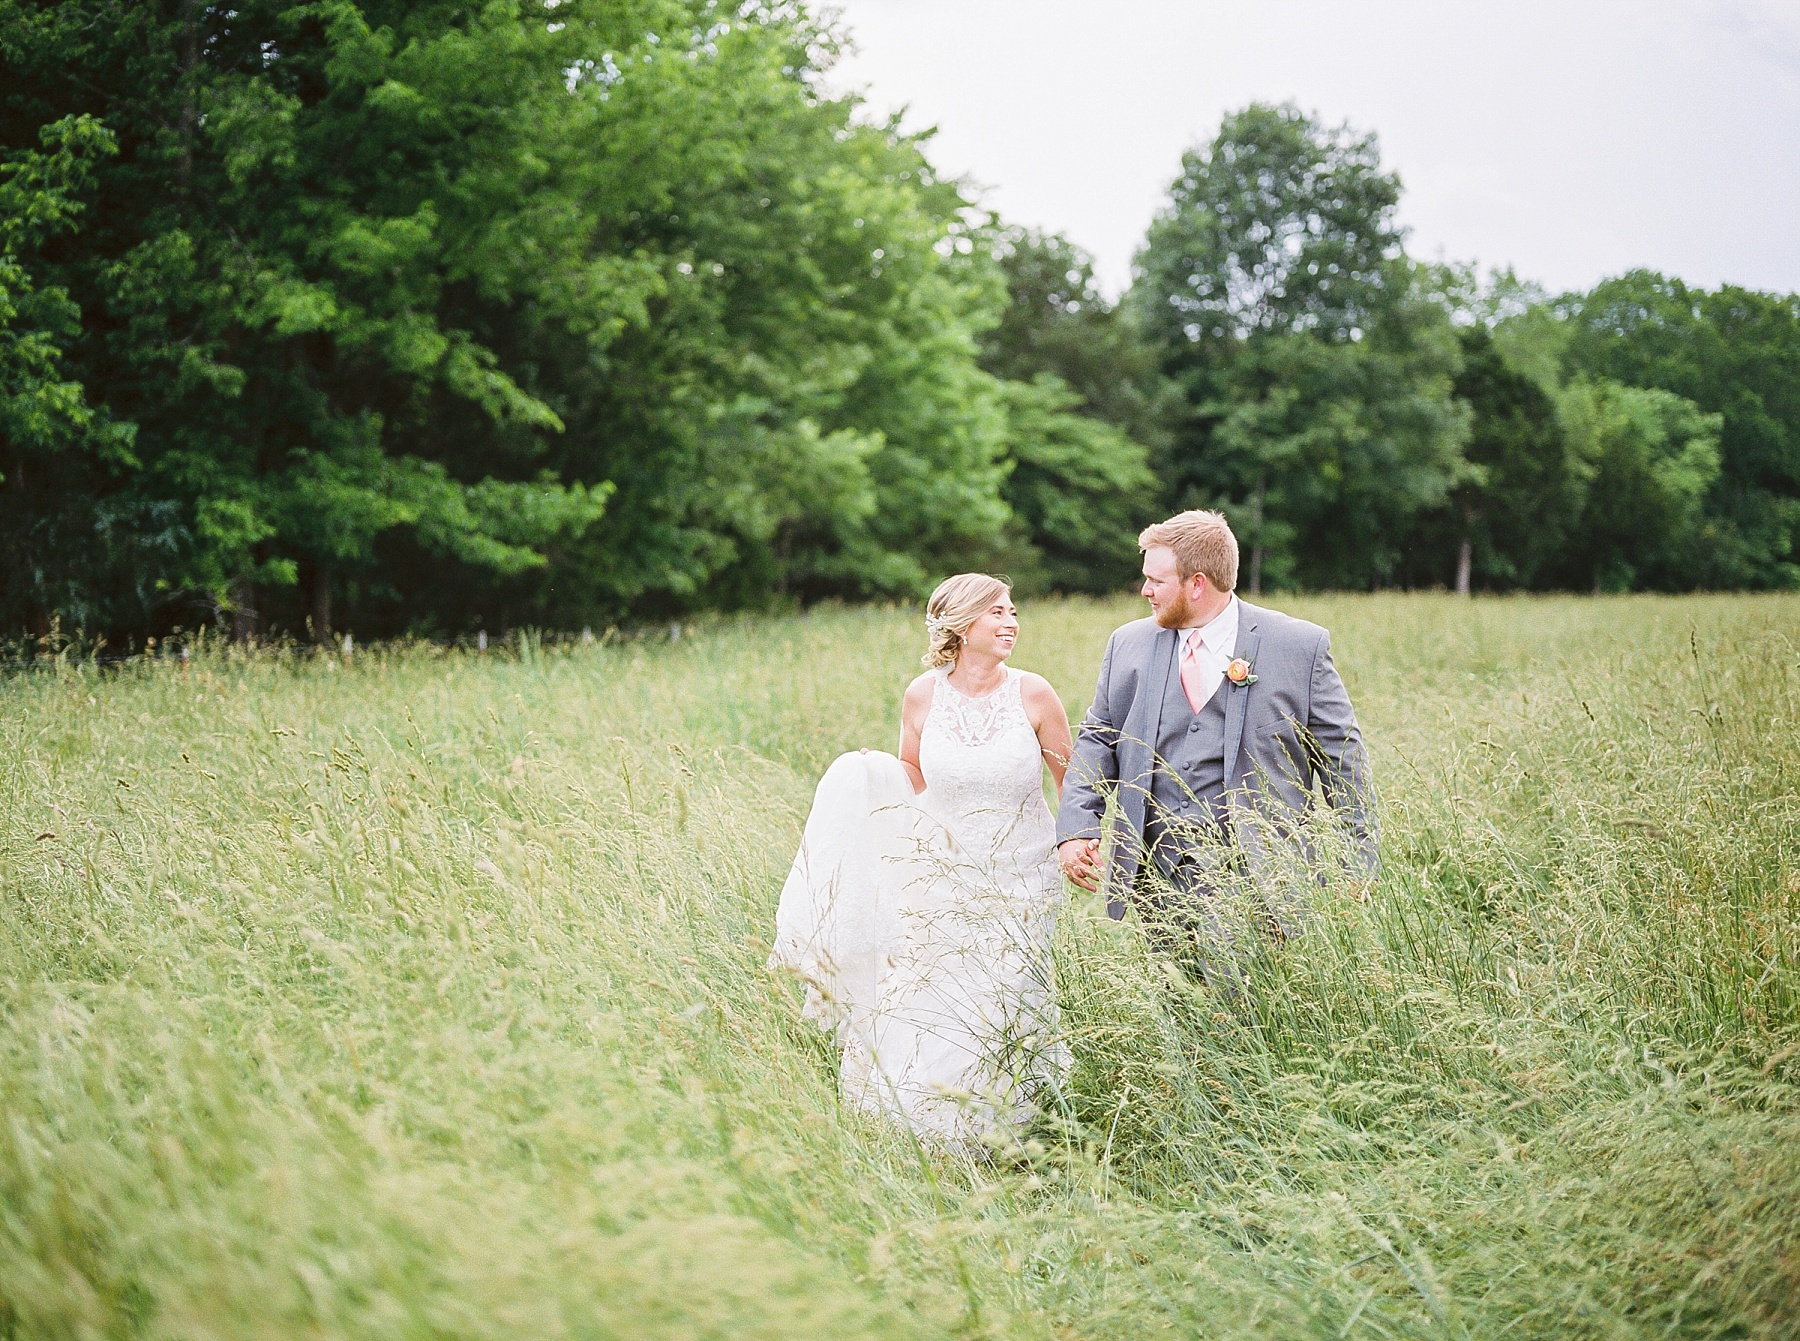 Peach and Dusty Blue Spring Wedding in Rolling Hills of Mid Missouri by Kelsi Kliethermes Photography Best Missouri and Maui Wedding Photographer_0020.jpg